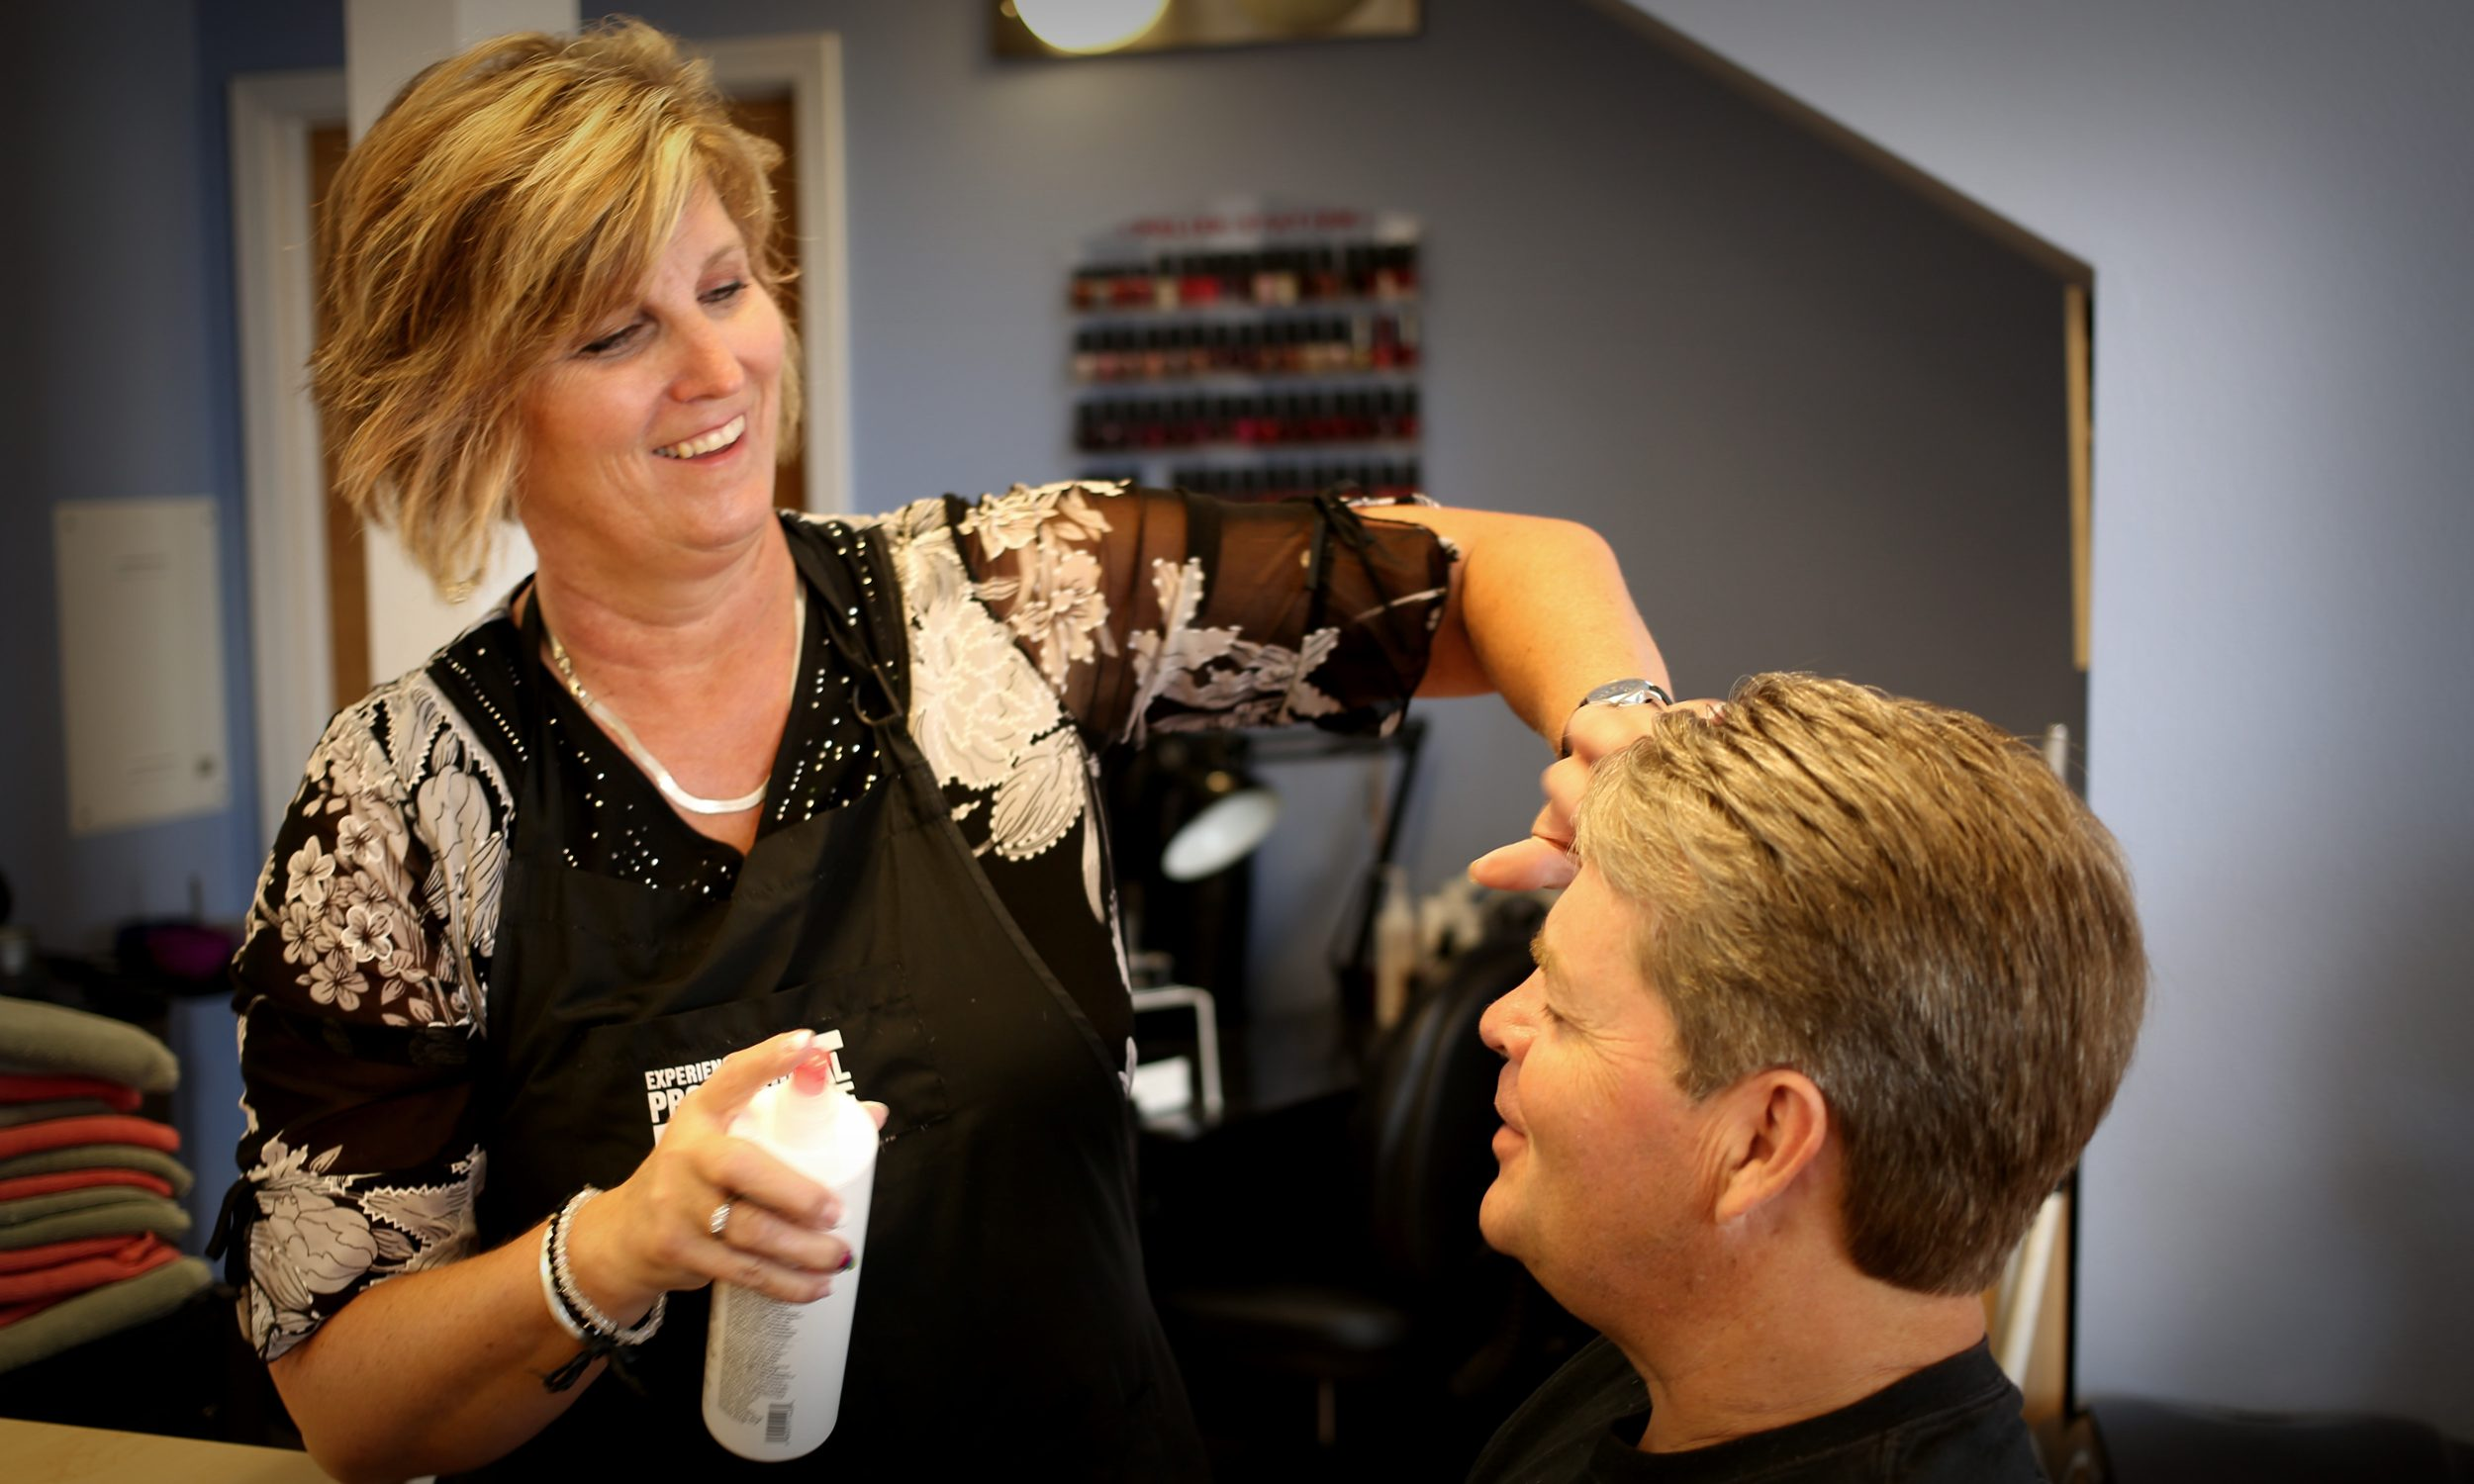 Client – Grand Junction Hair Salon